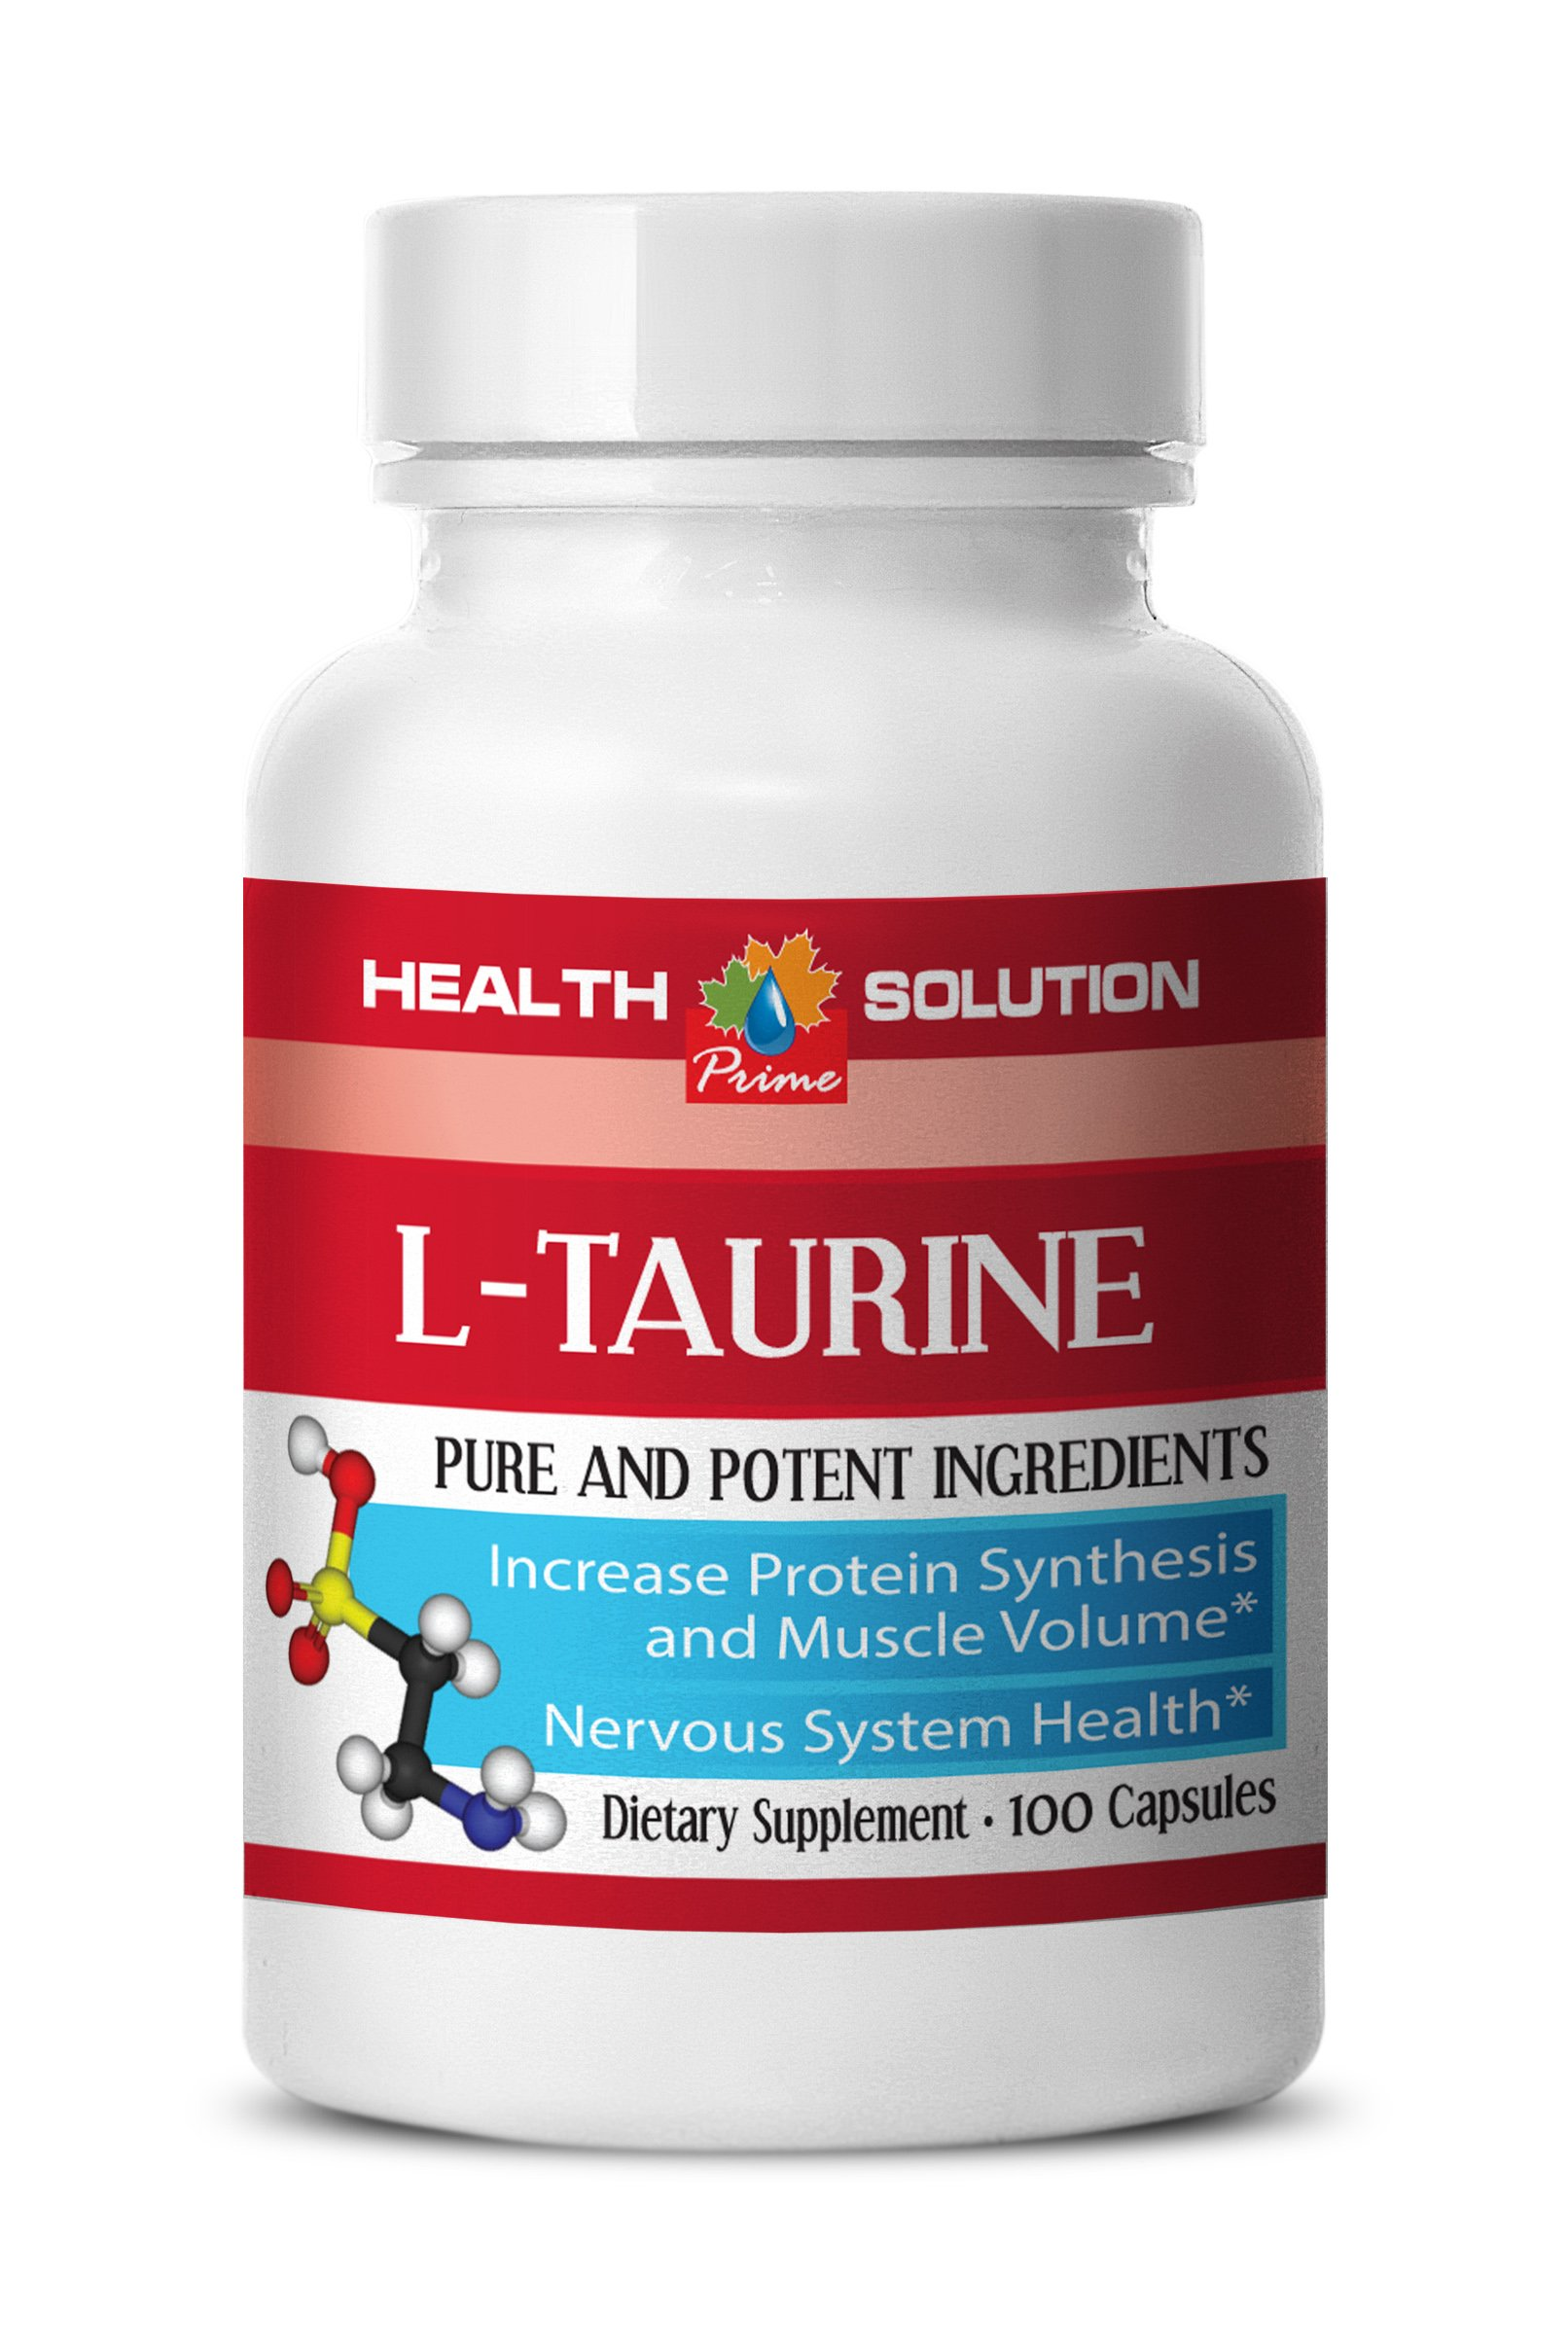 L-taurine supplement - L-TAURINE 500MG - support vision (1 Bottle)